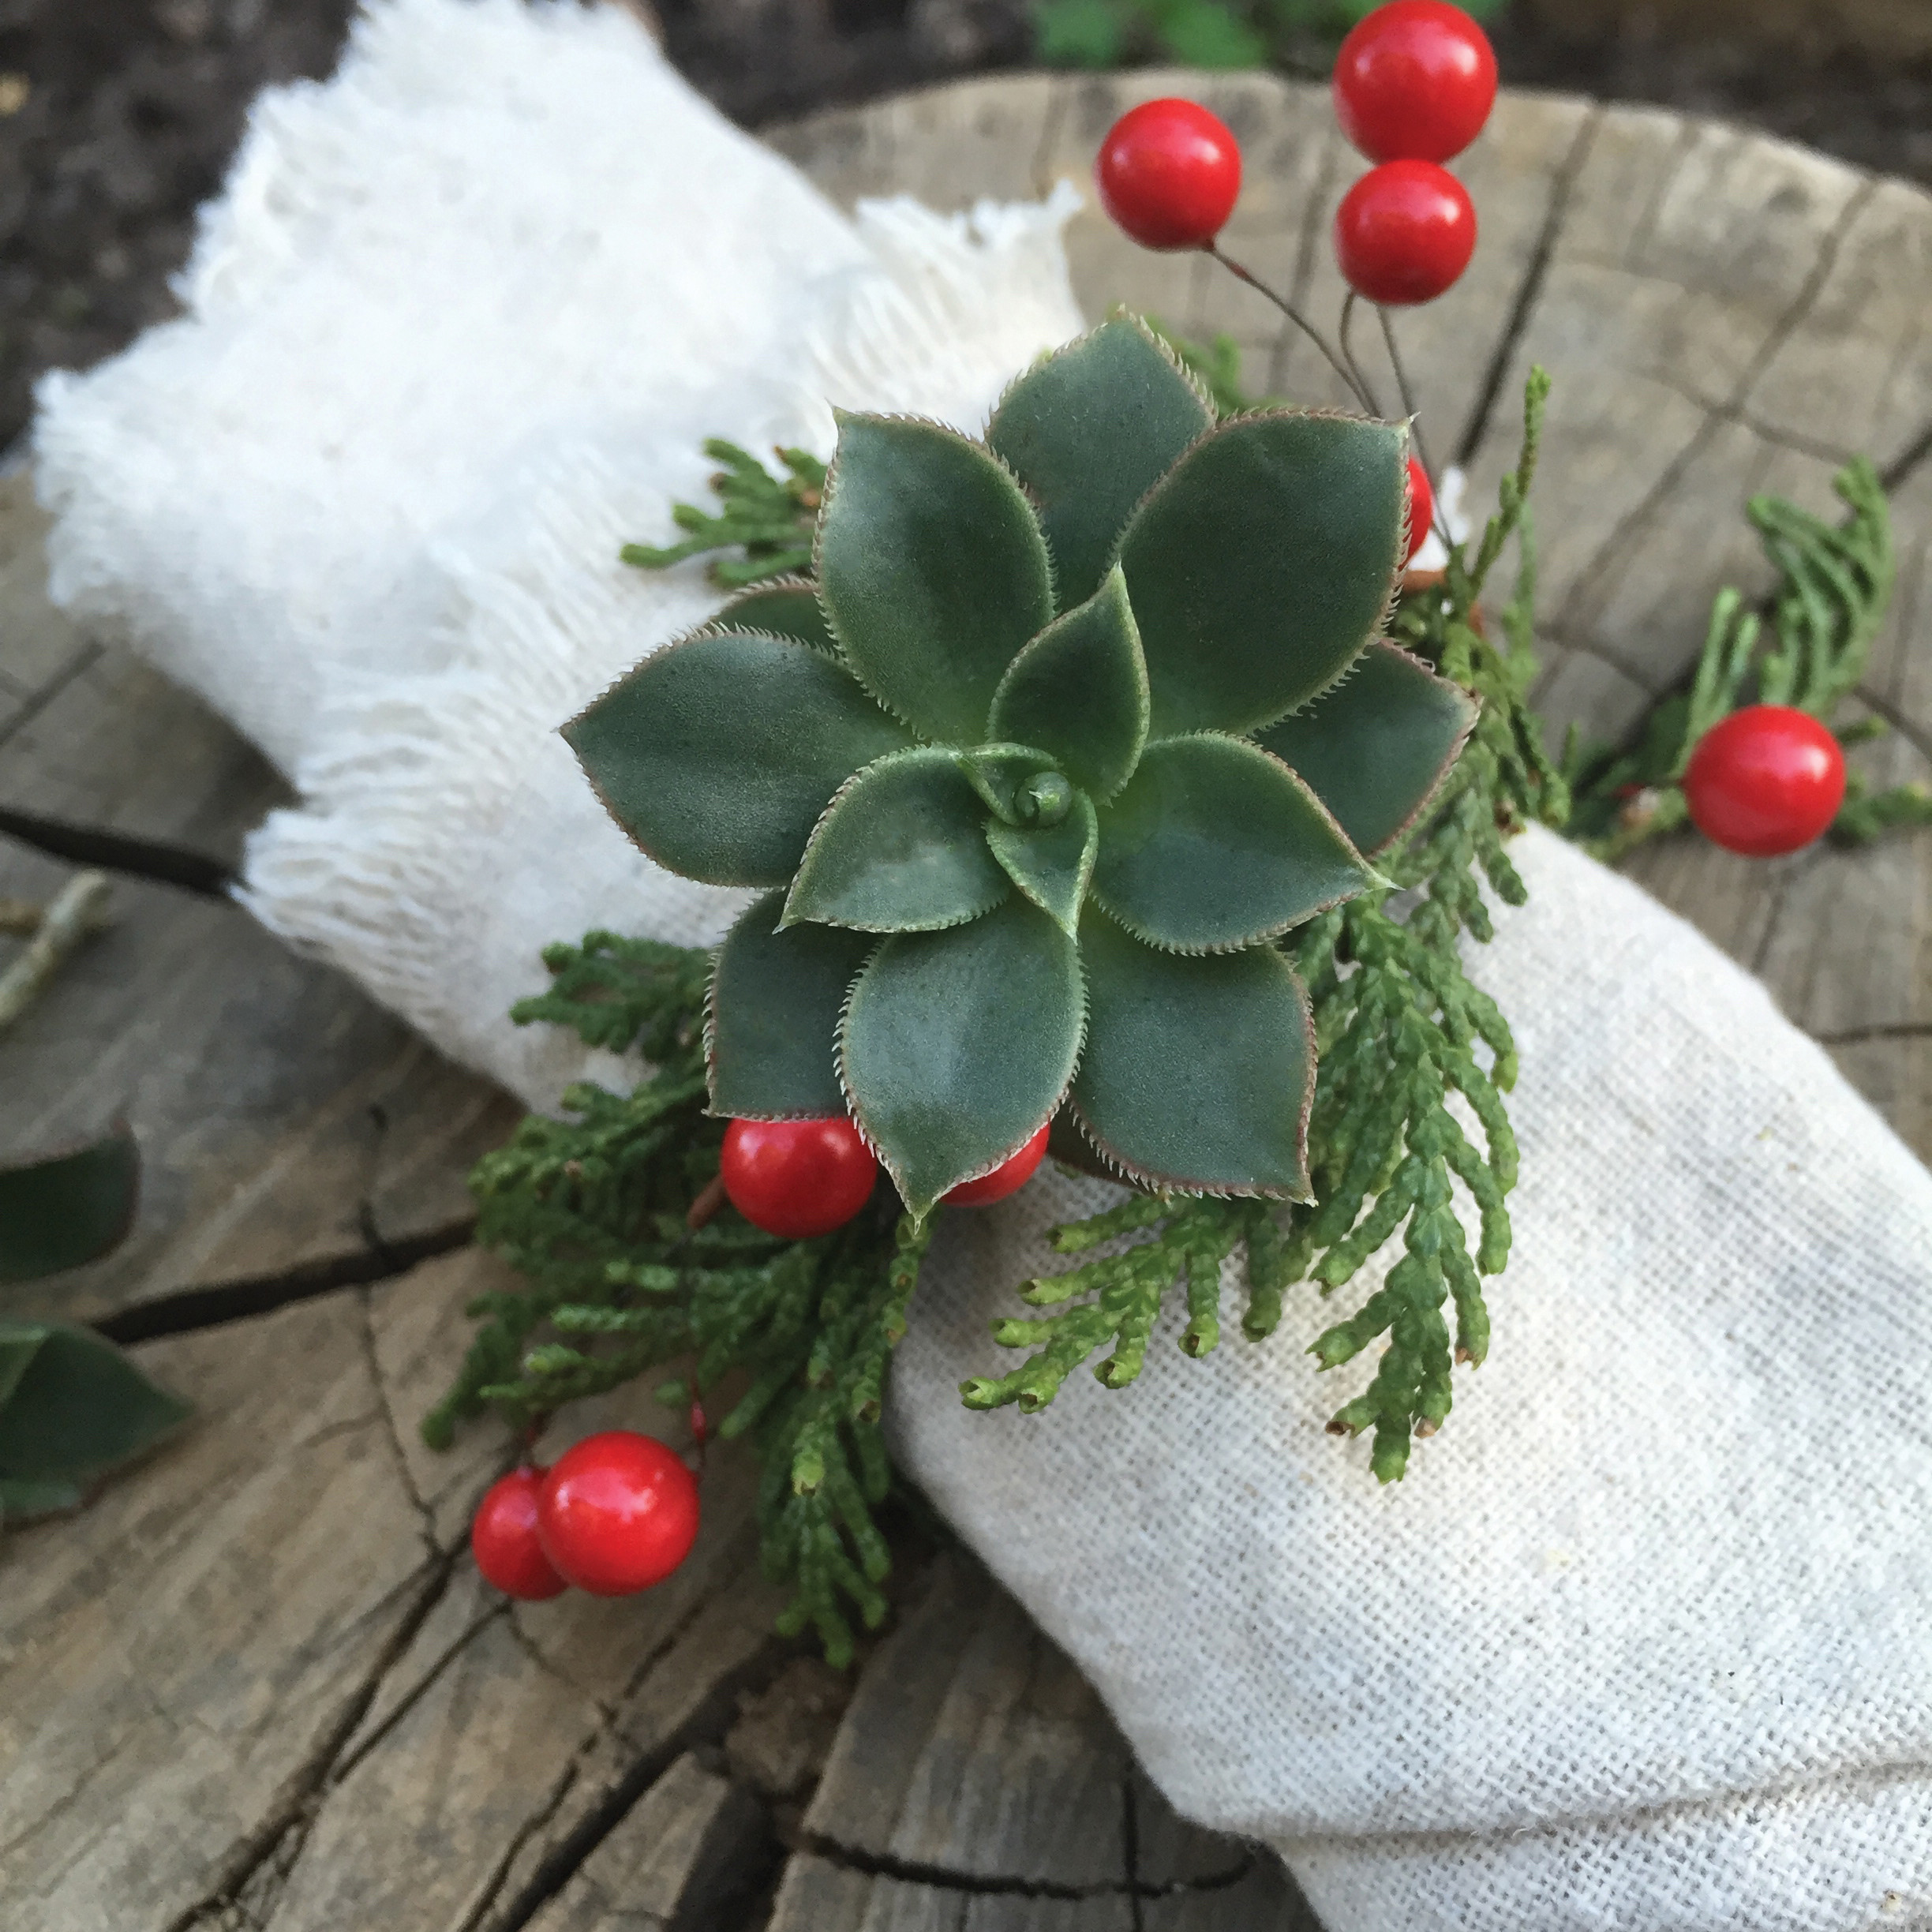 Diy Succulent Napkin Rings For A Modern Rustic Holiday Table Do It Yourself Projects Lonny